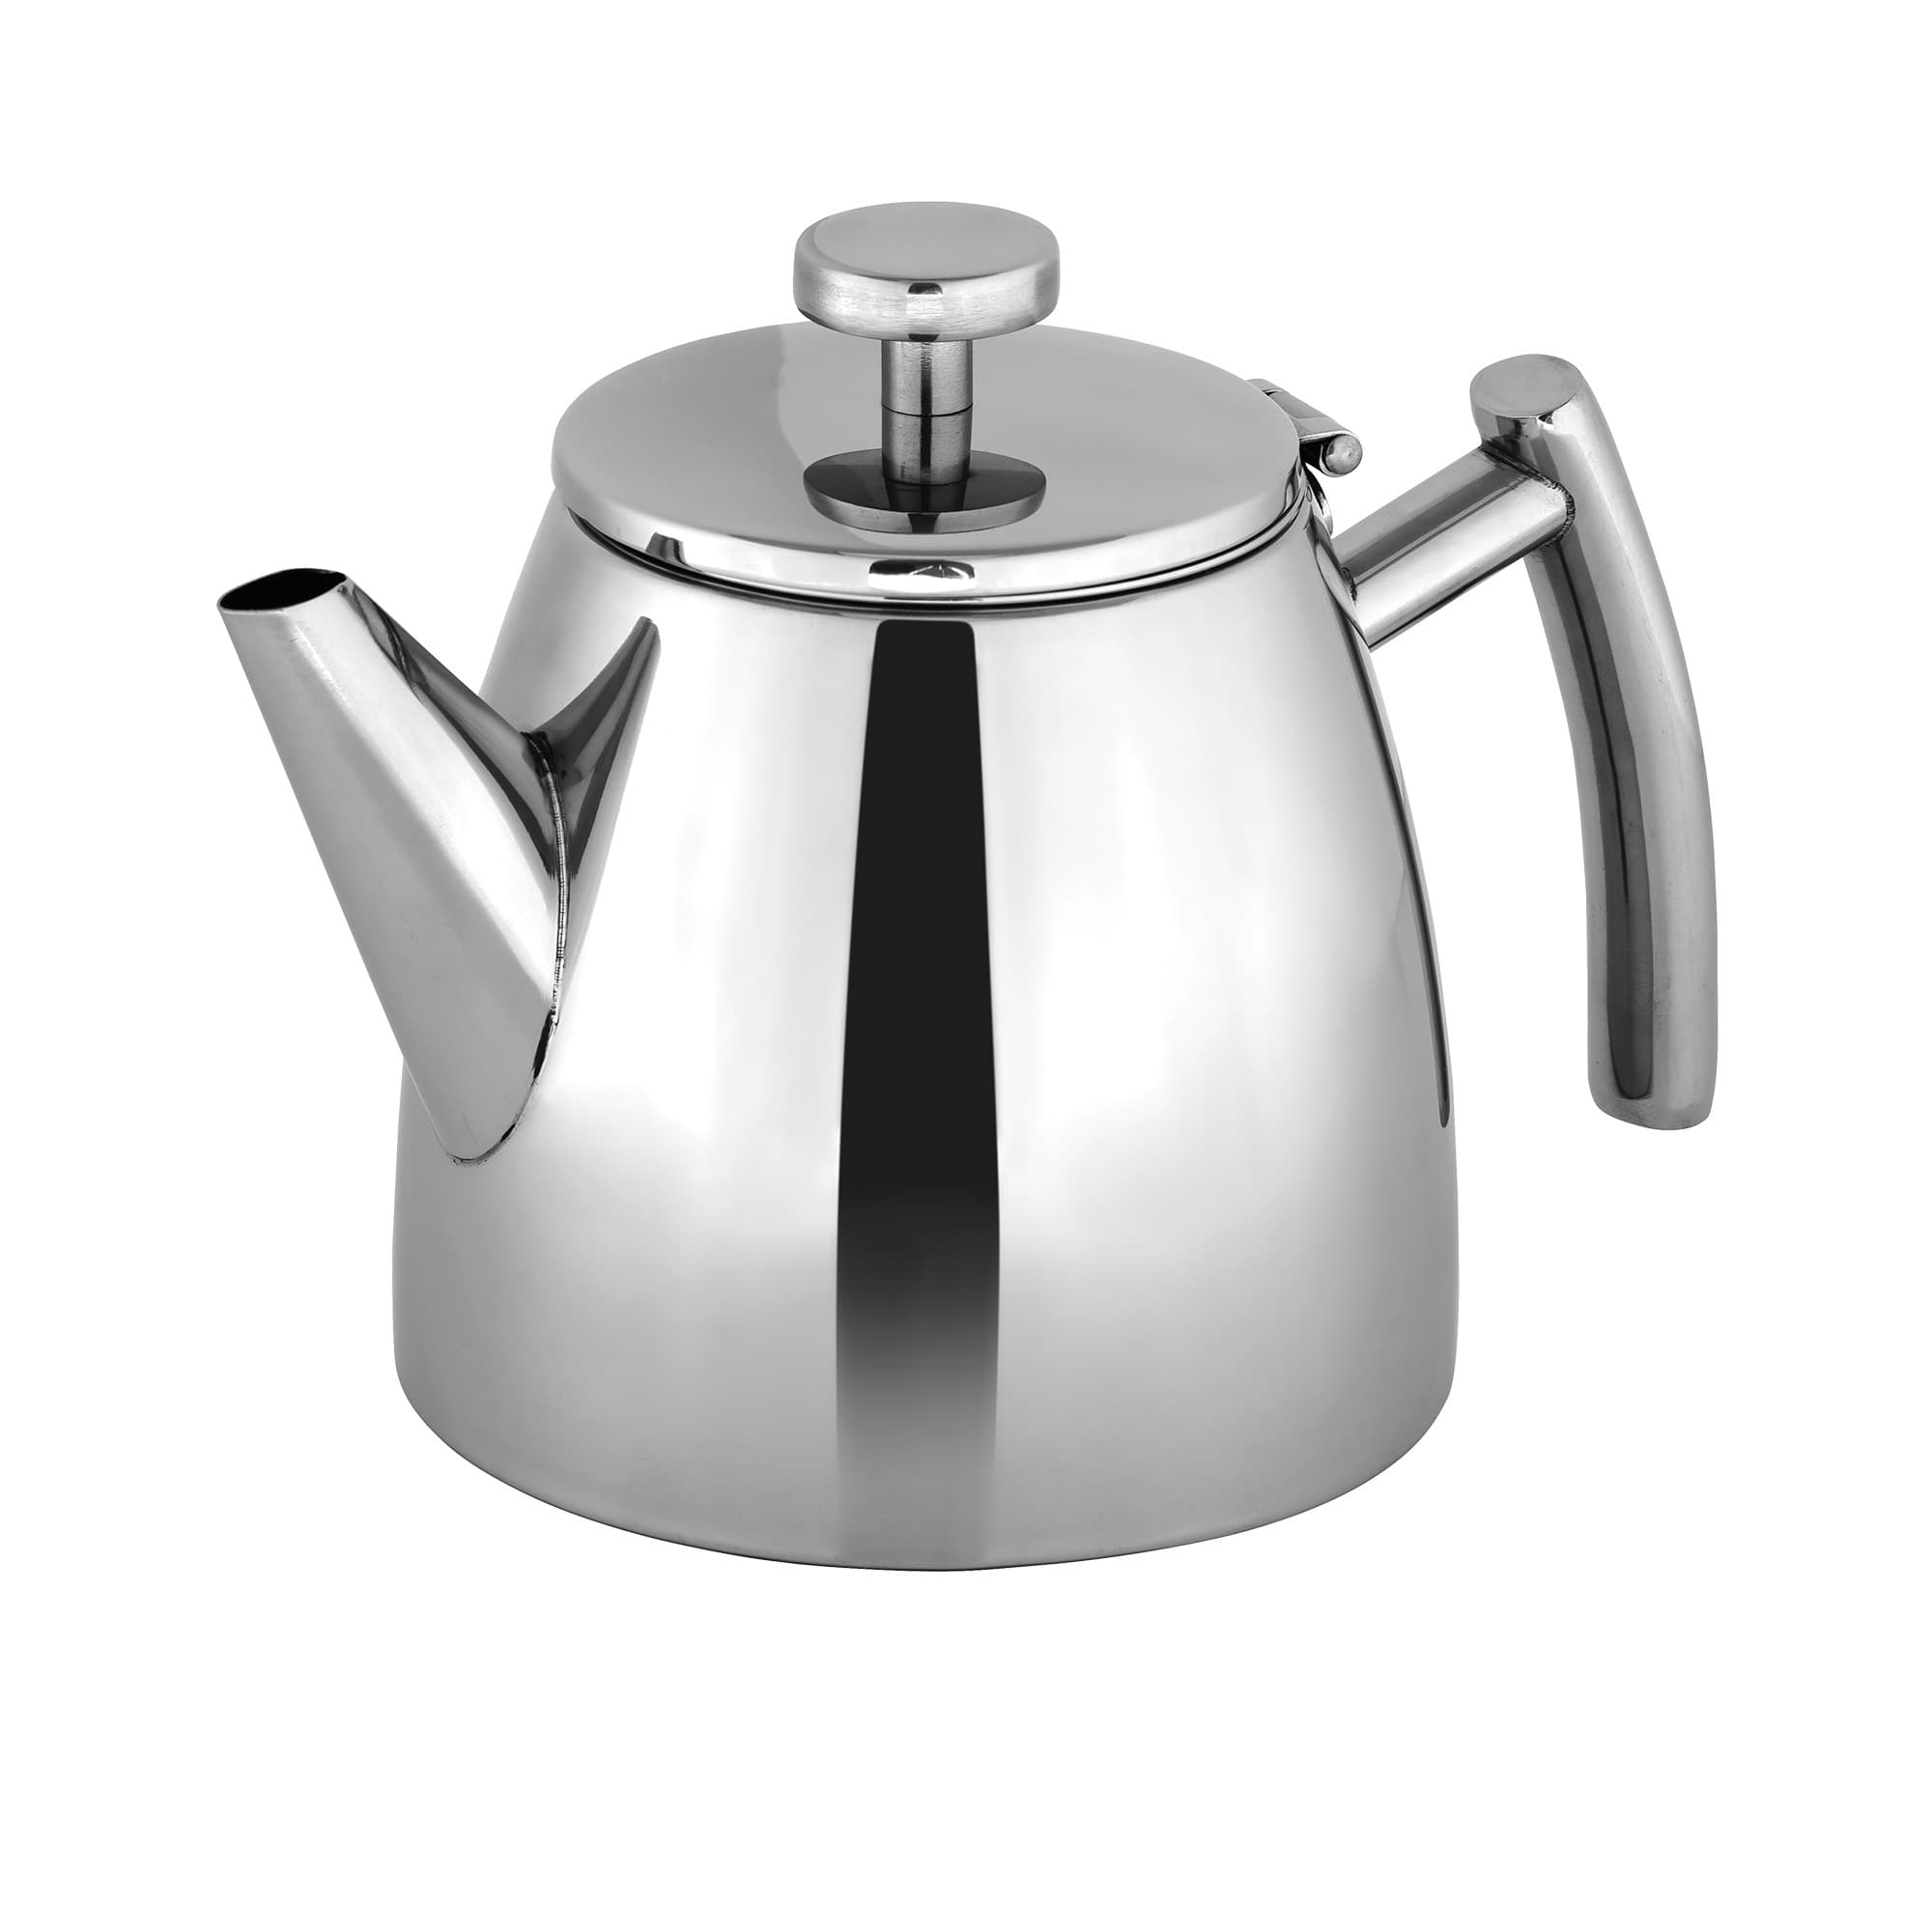 Avanti Modena Stainless Steel Double Wall Teapot 600ml